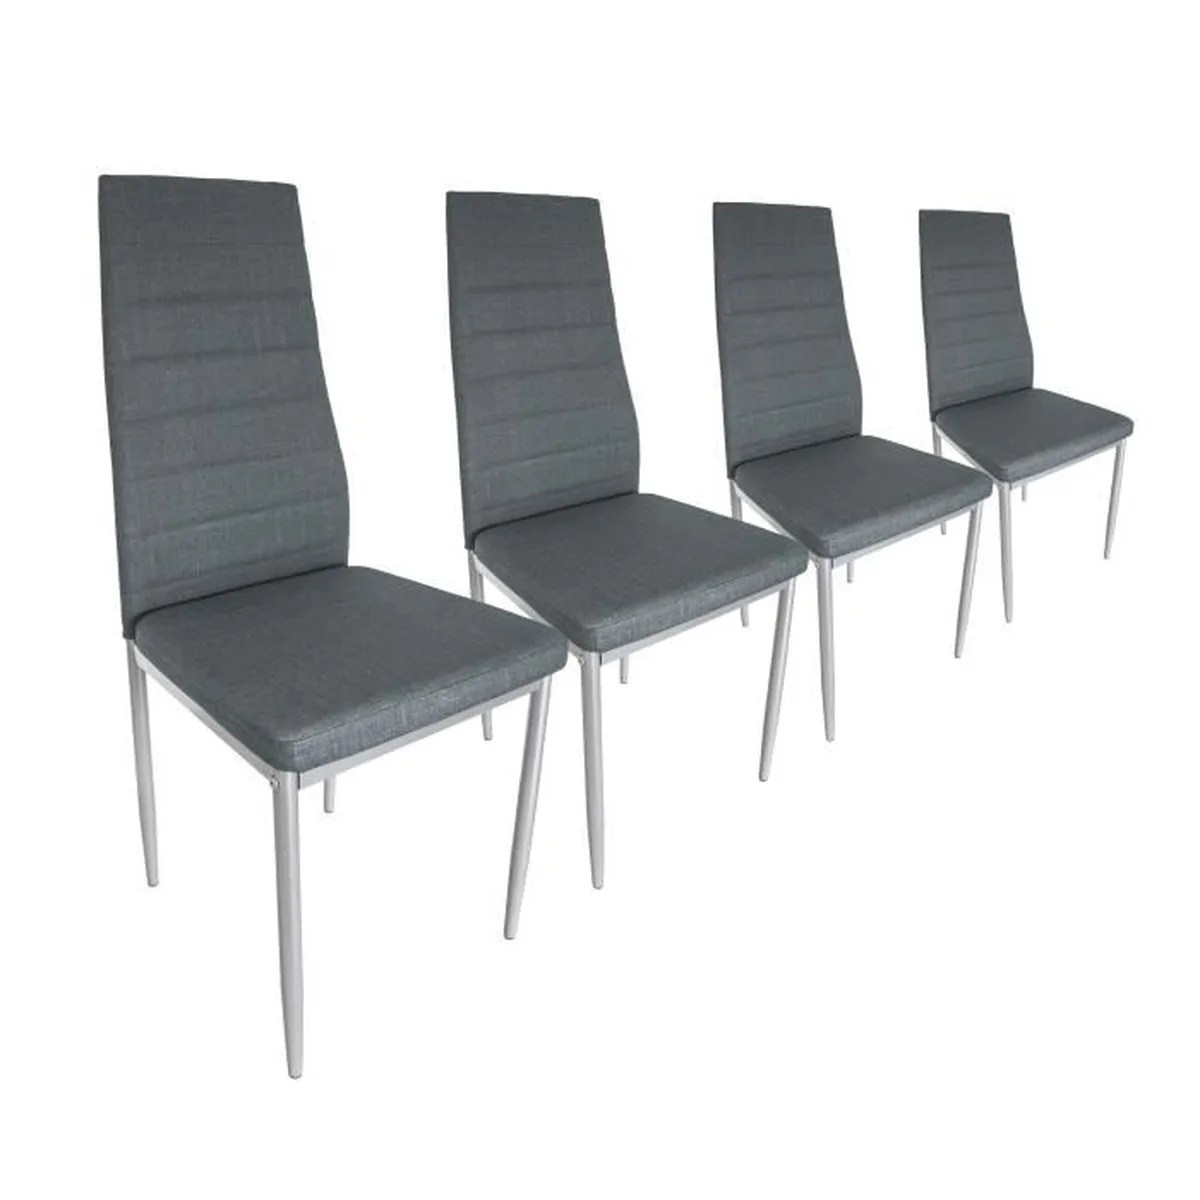 Chaise Simili Cuir Gris Lot De 4 Chaises En Simili Cuir Gris